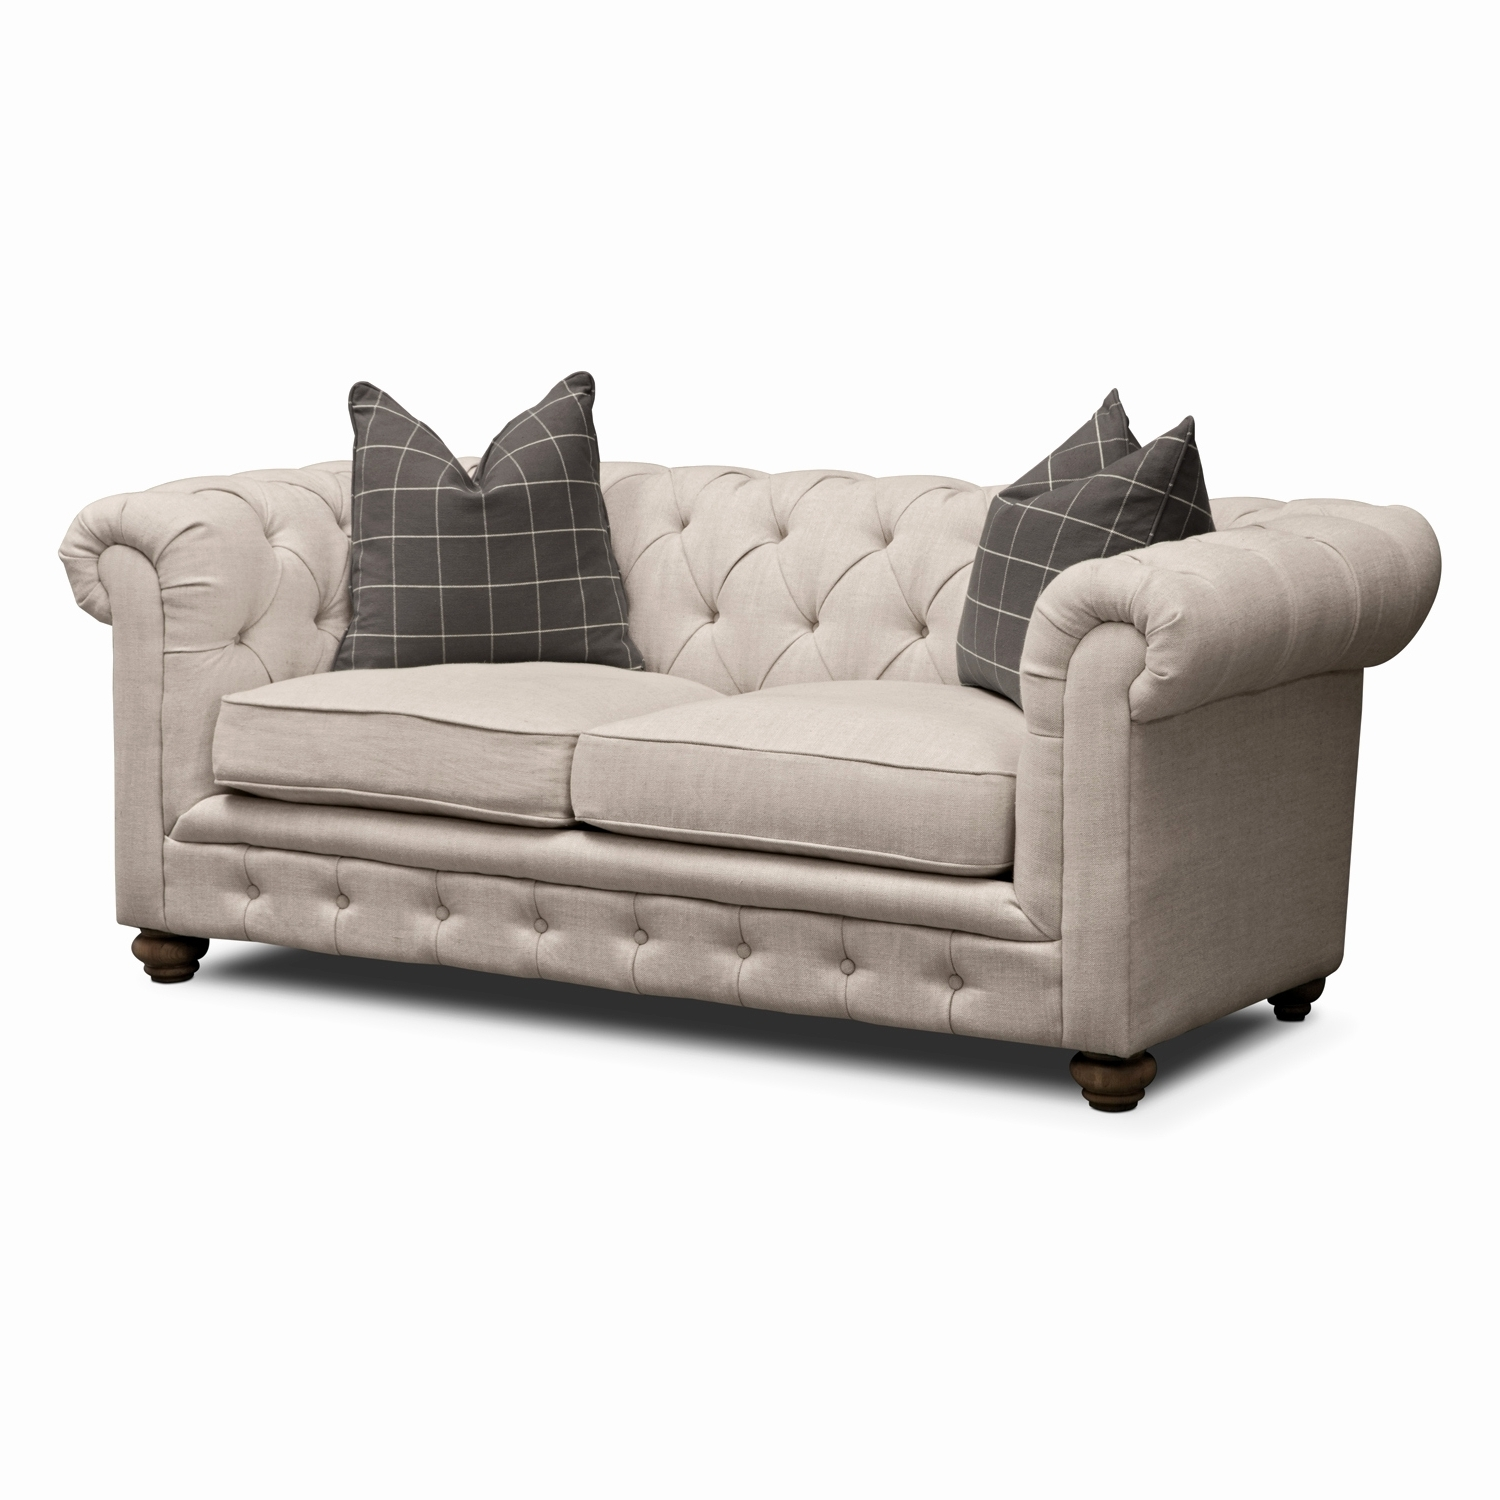 Bryden Sofa Slate Value City Furniture And Mattresses For Sofas With Regard To Well Known Value City Sofas (View 6 of 20)